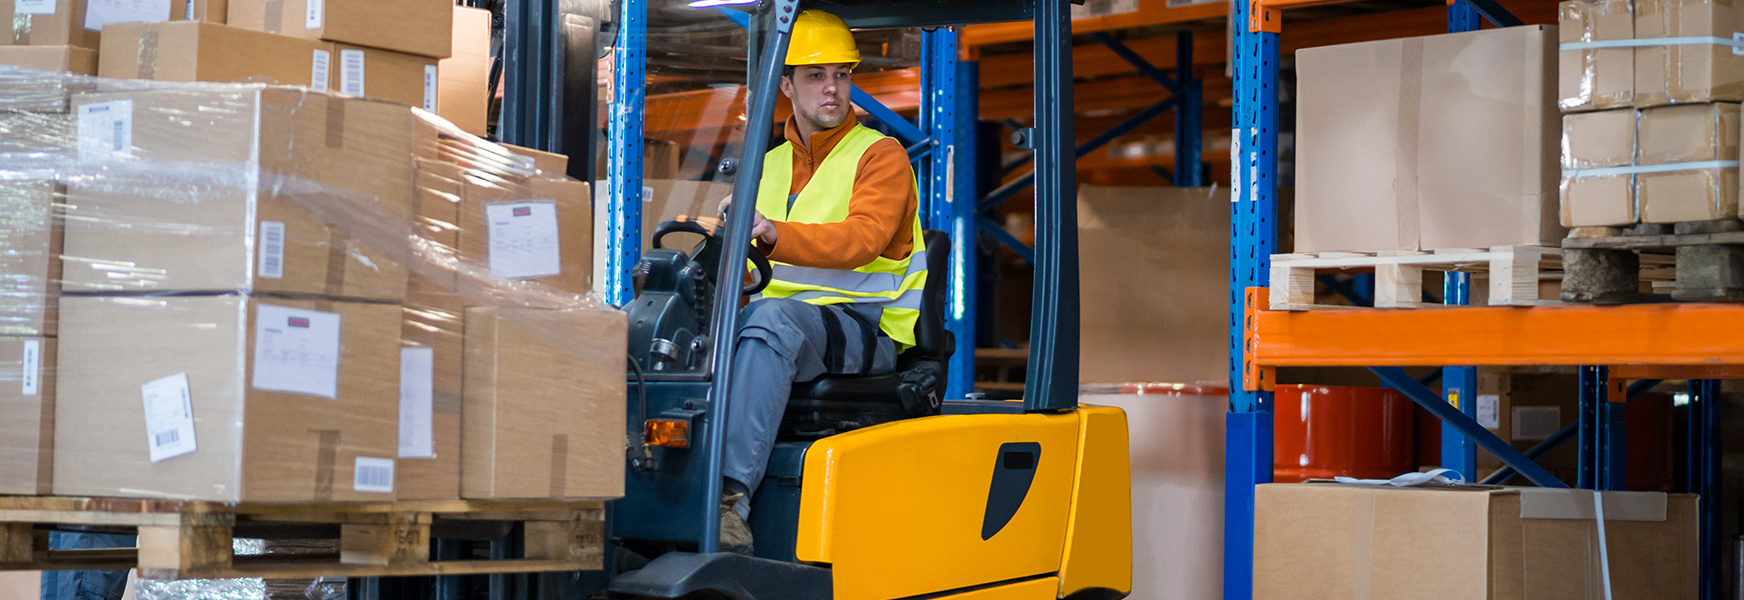 Worker Operating a Forklift